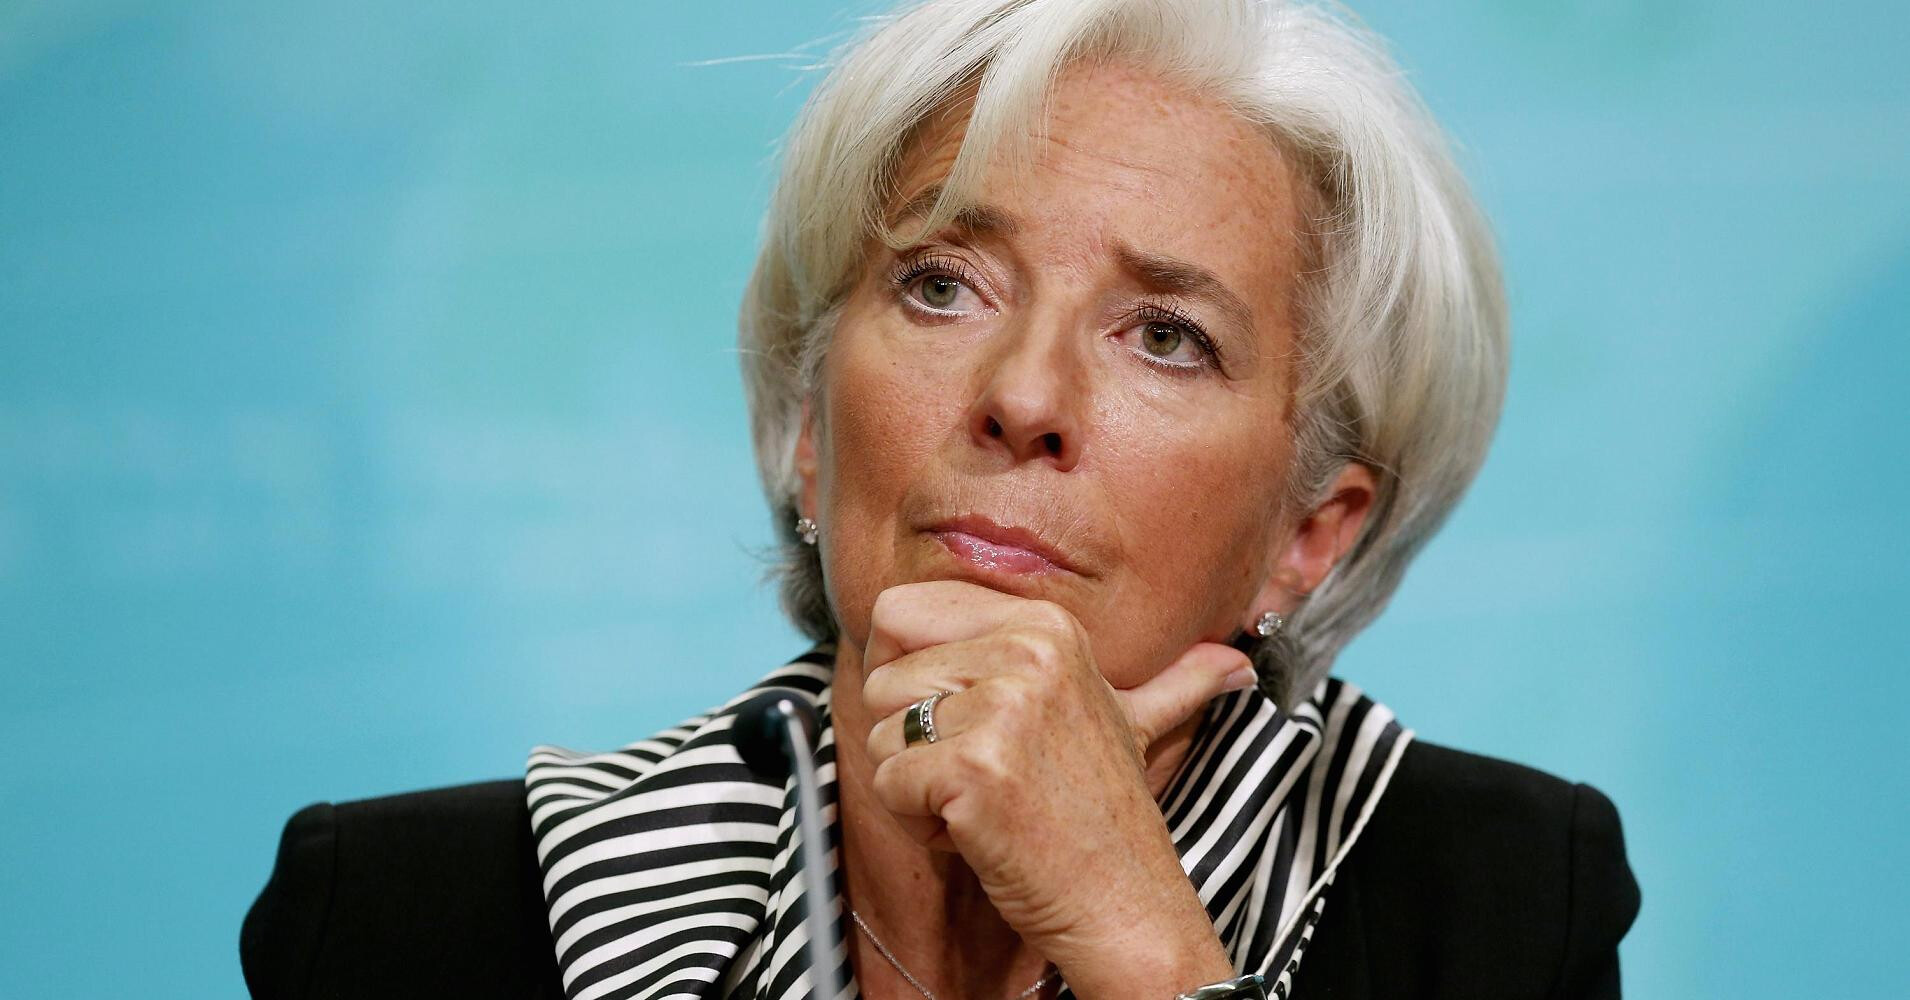 Christine-Lagarde-as-10-mulheres-mais-influentes-do-mundo